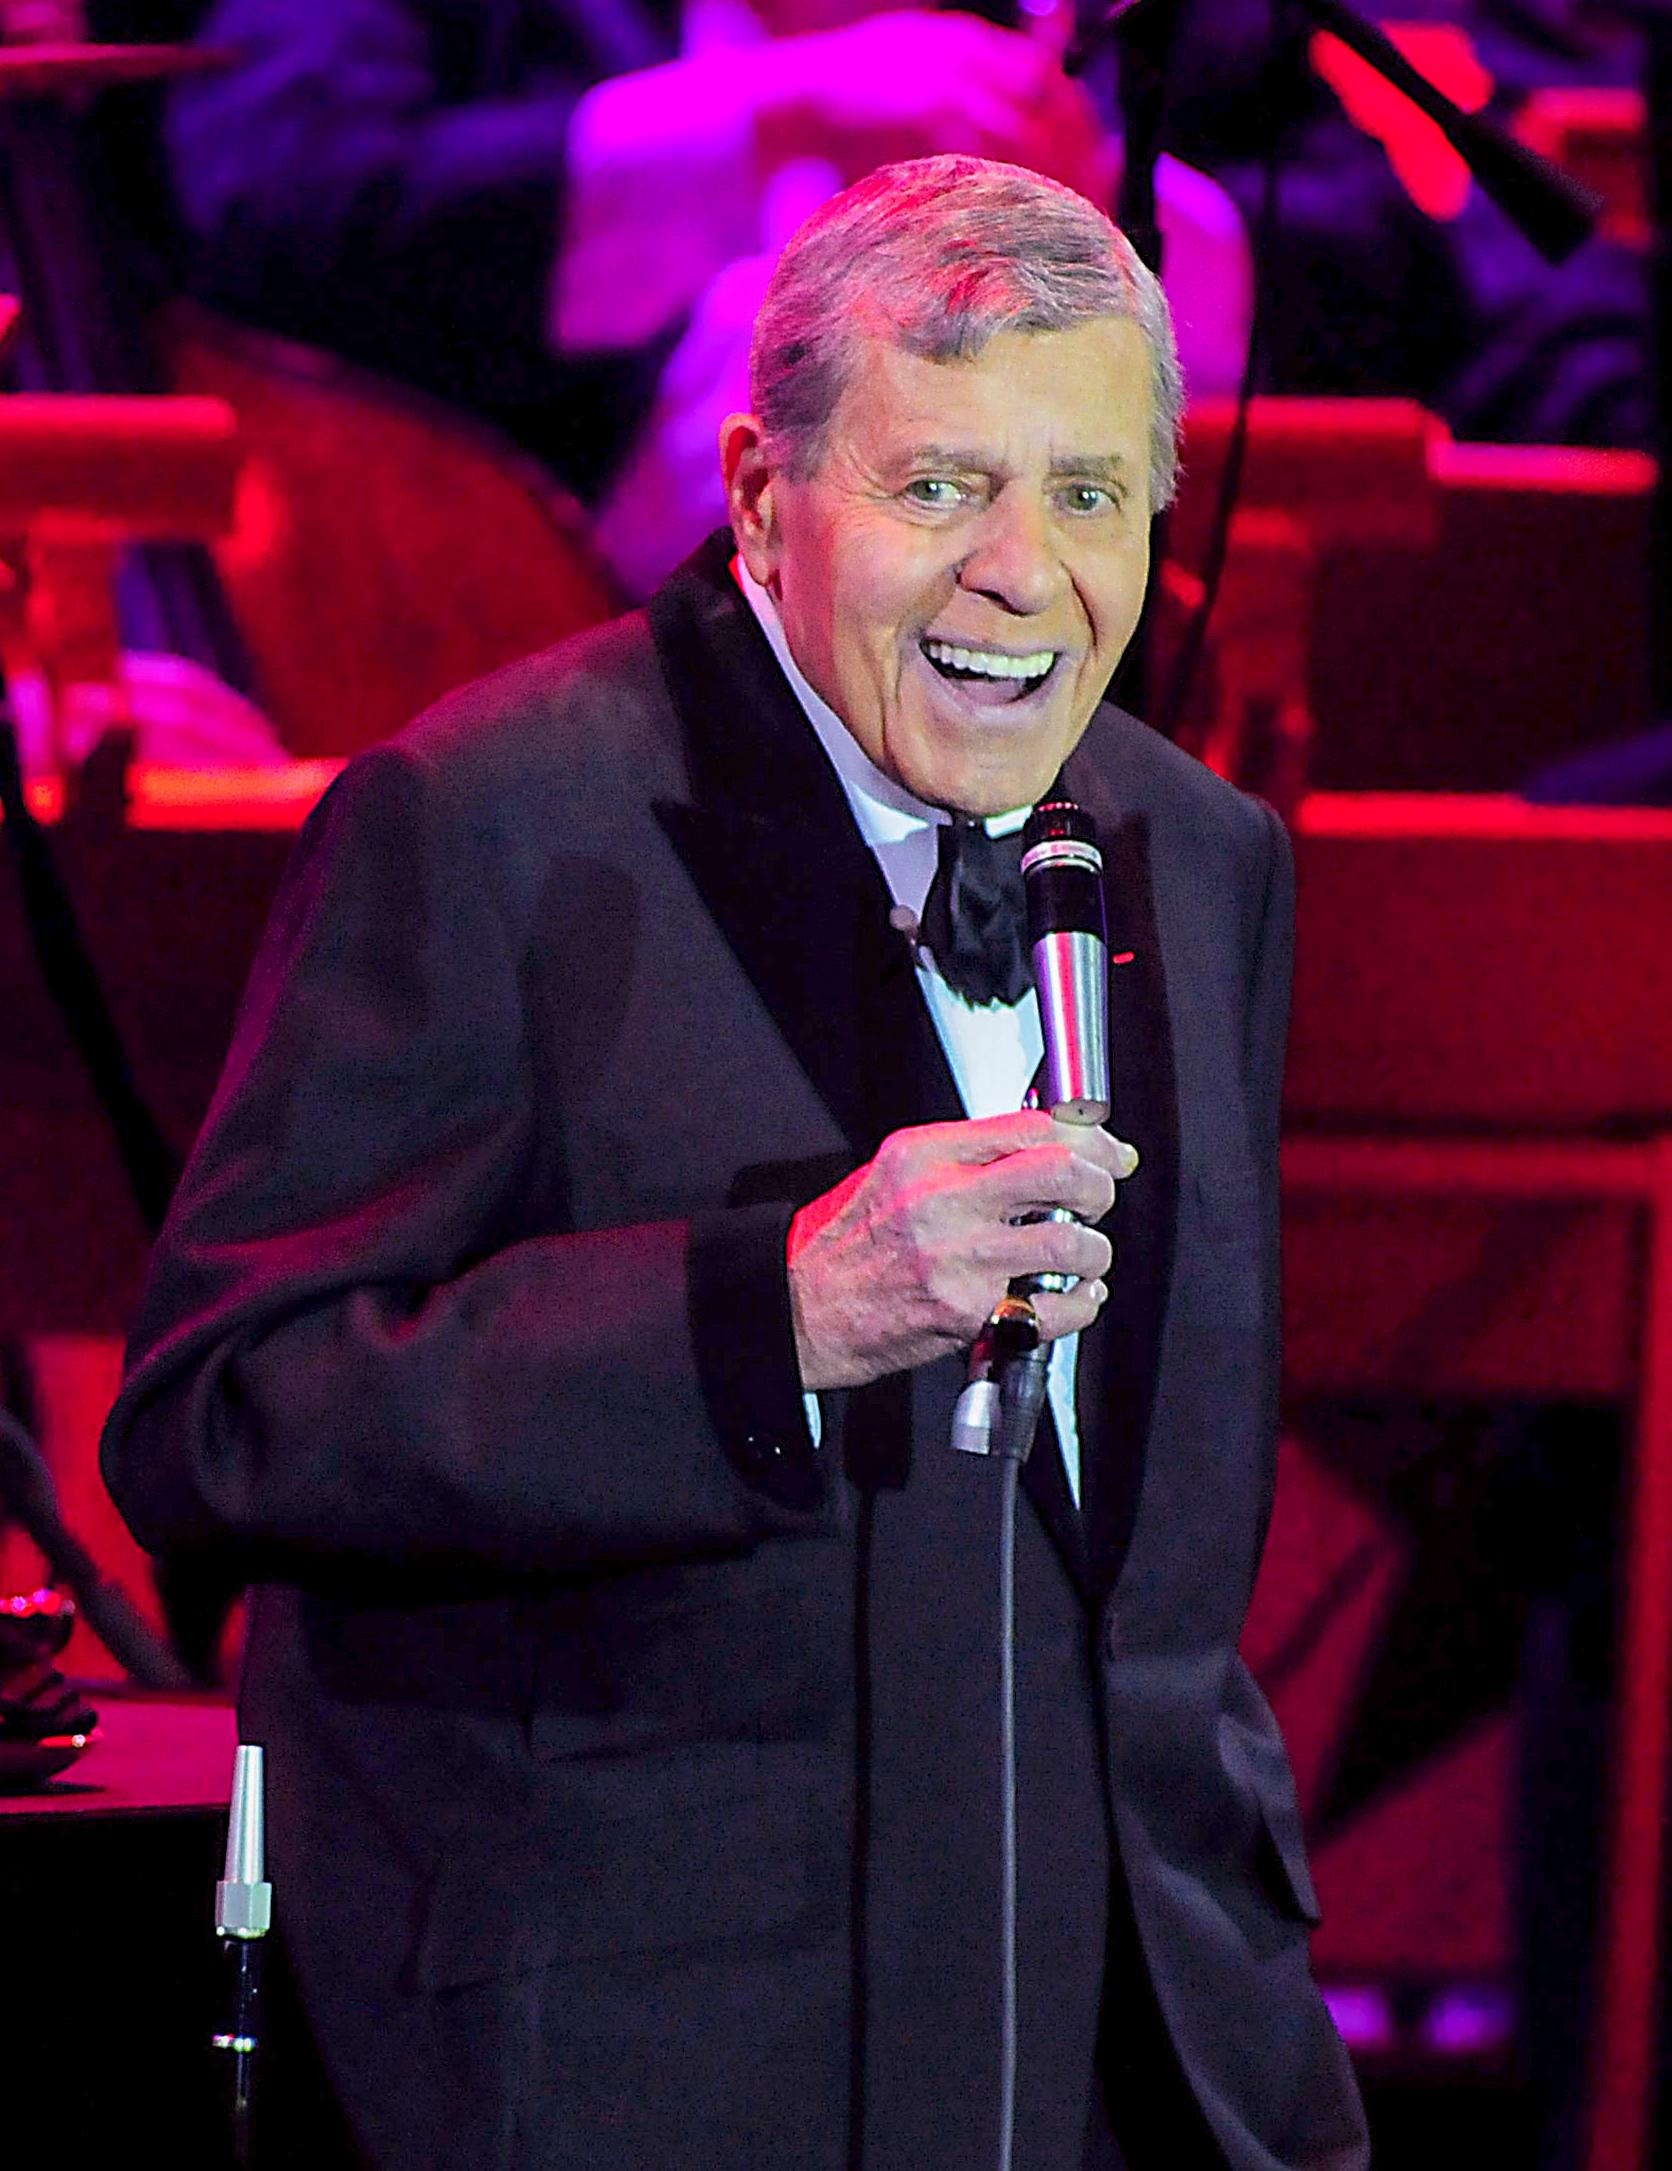 Jerry Lewis performs An Evening with Jerry Lewis- Live from Las Vegas PBS Television Special celebrating 75 years in show business at The Orleans Hotel & Casino Showroom in Las Vegas, Nevada November 18, 2012. CREDIT: Las Vegas News Bureau